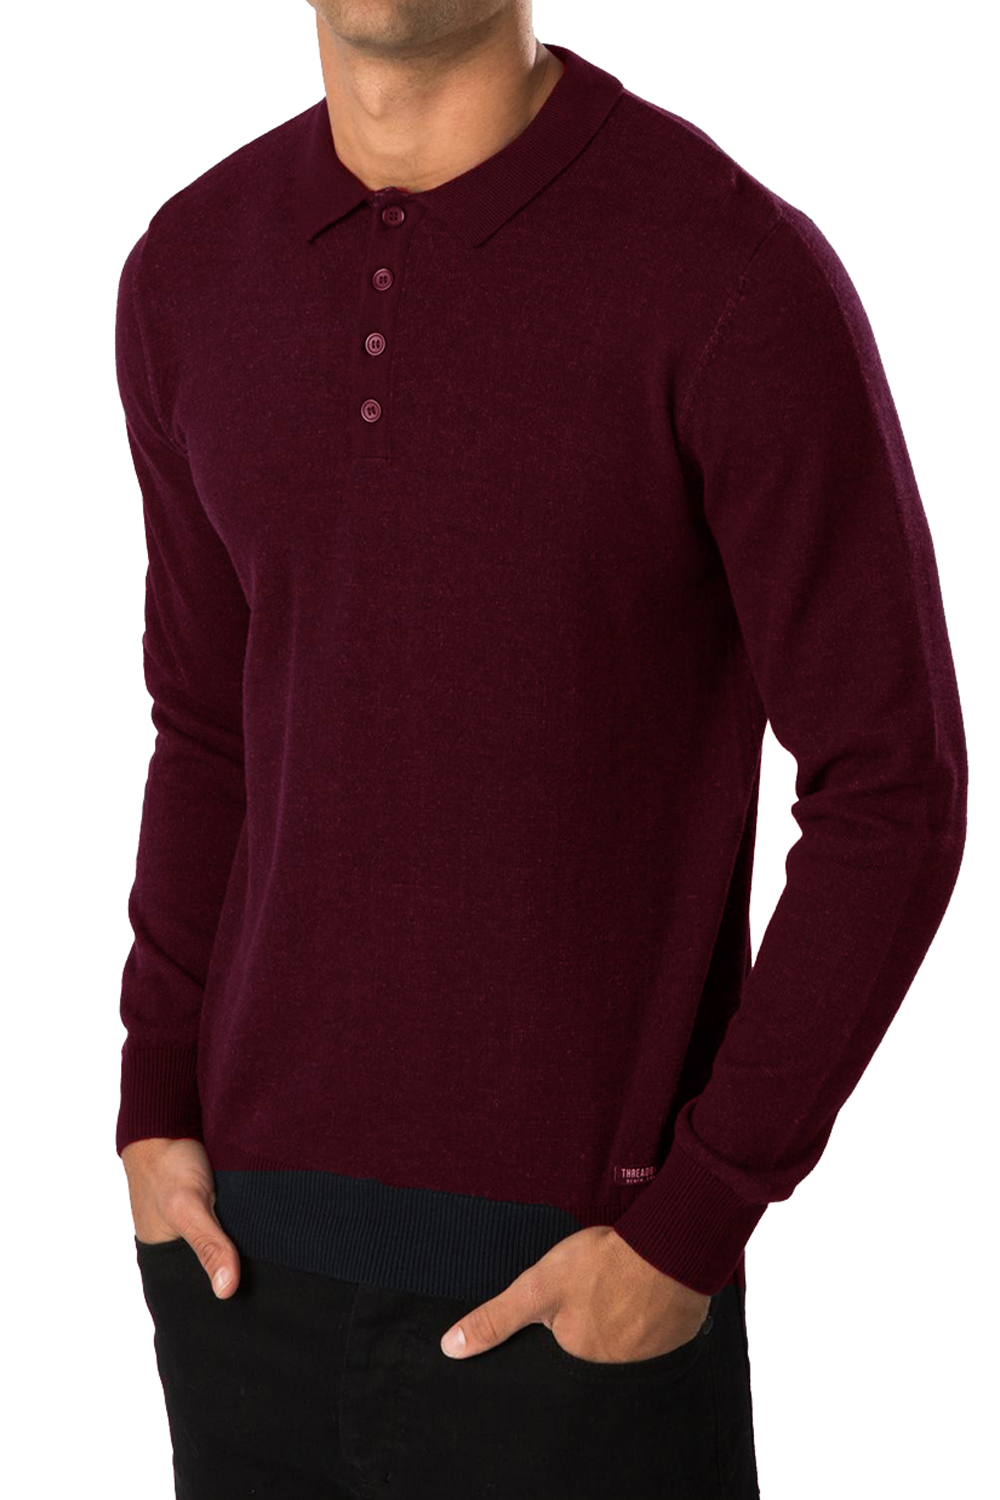 Threadbare mens jumper kiev polo neck collared top long for Mens sweater collared shirt